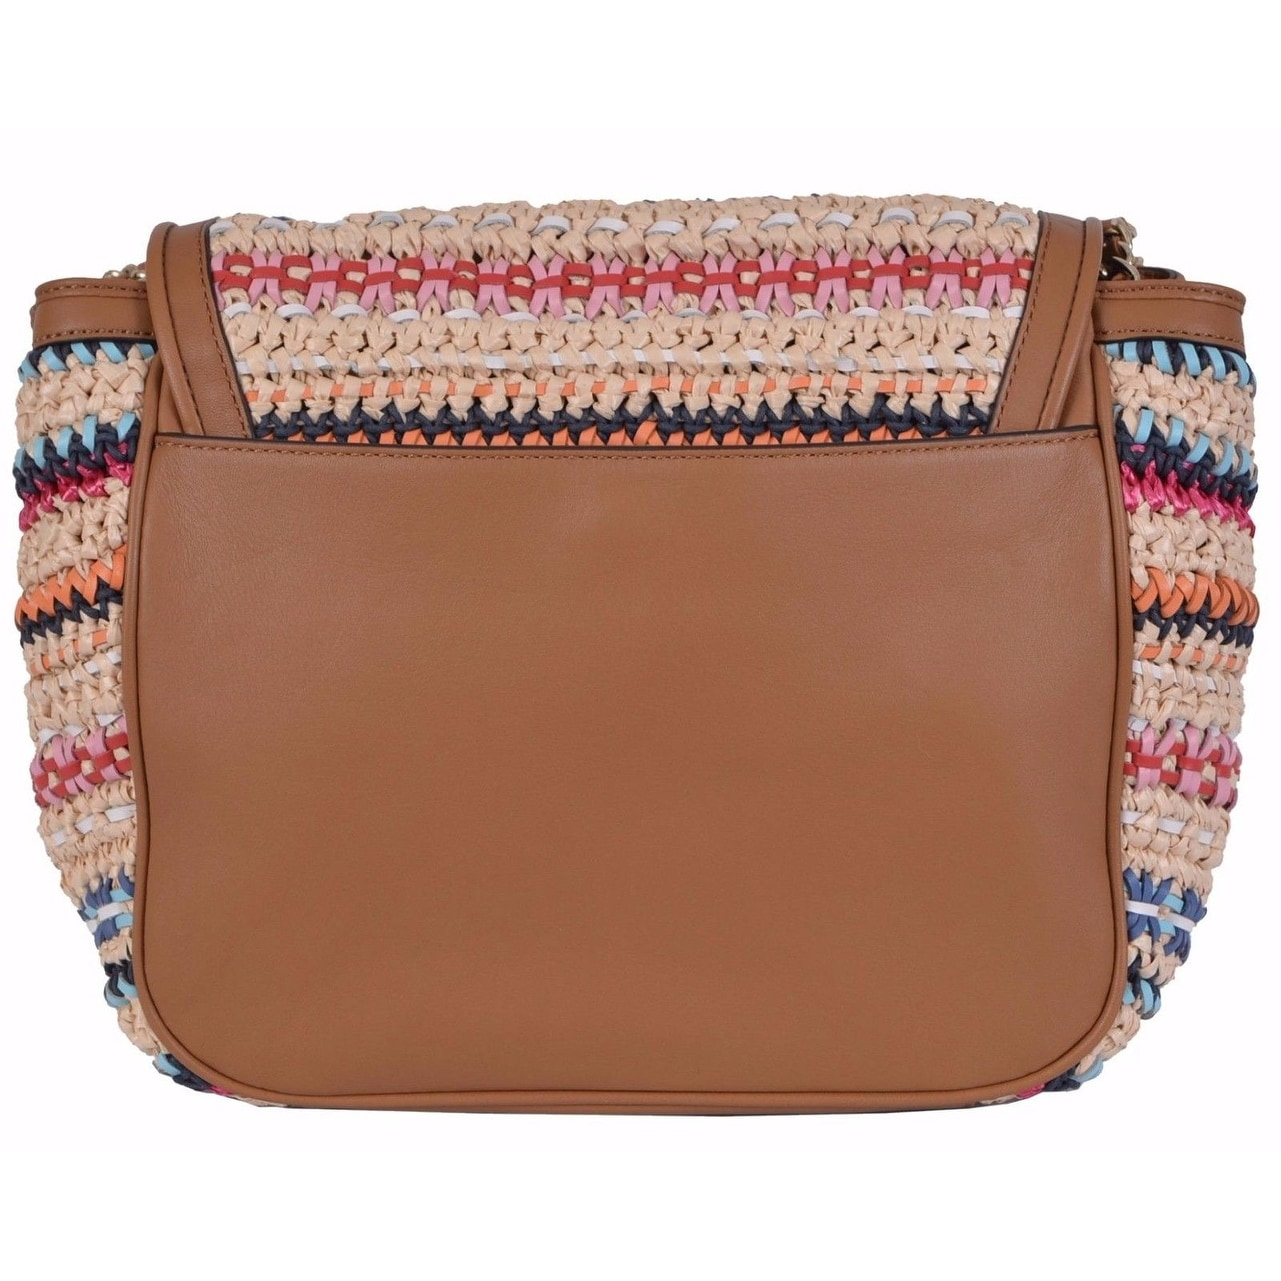 c805a291d222 Shop Tory Burch Woven Marion Boho Flap Shoulder Purse Handbag - On Sale -  Free Shipping Today - Overstock - 21527274